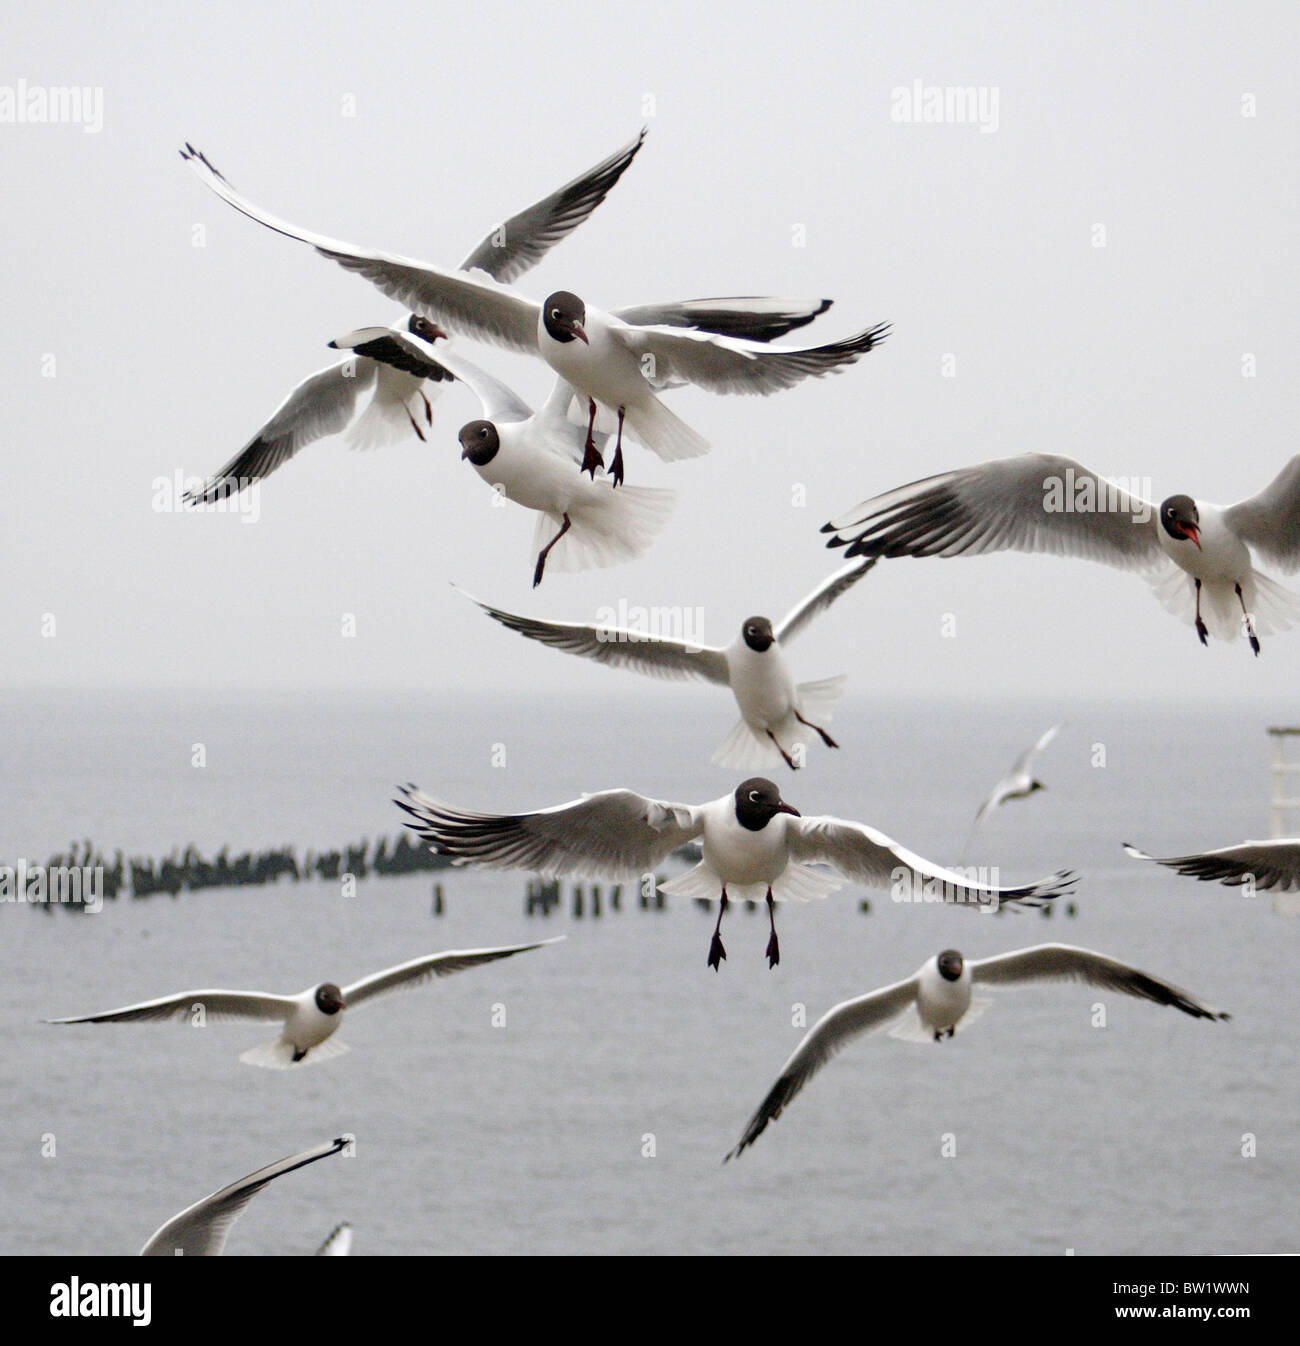 Black-headed seagulls in flight - Stock Image